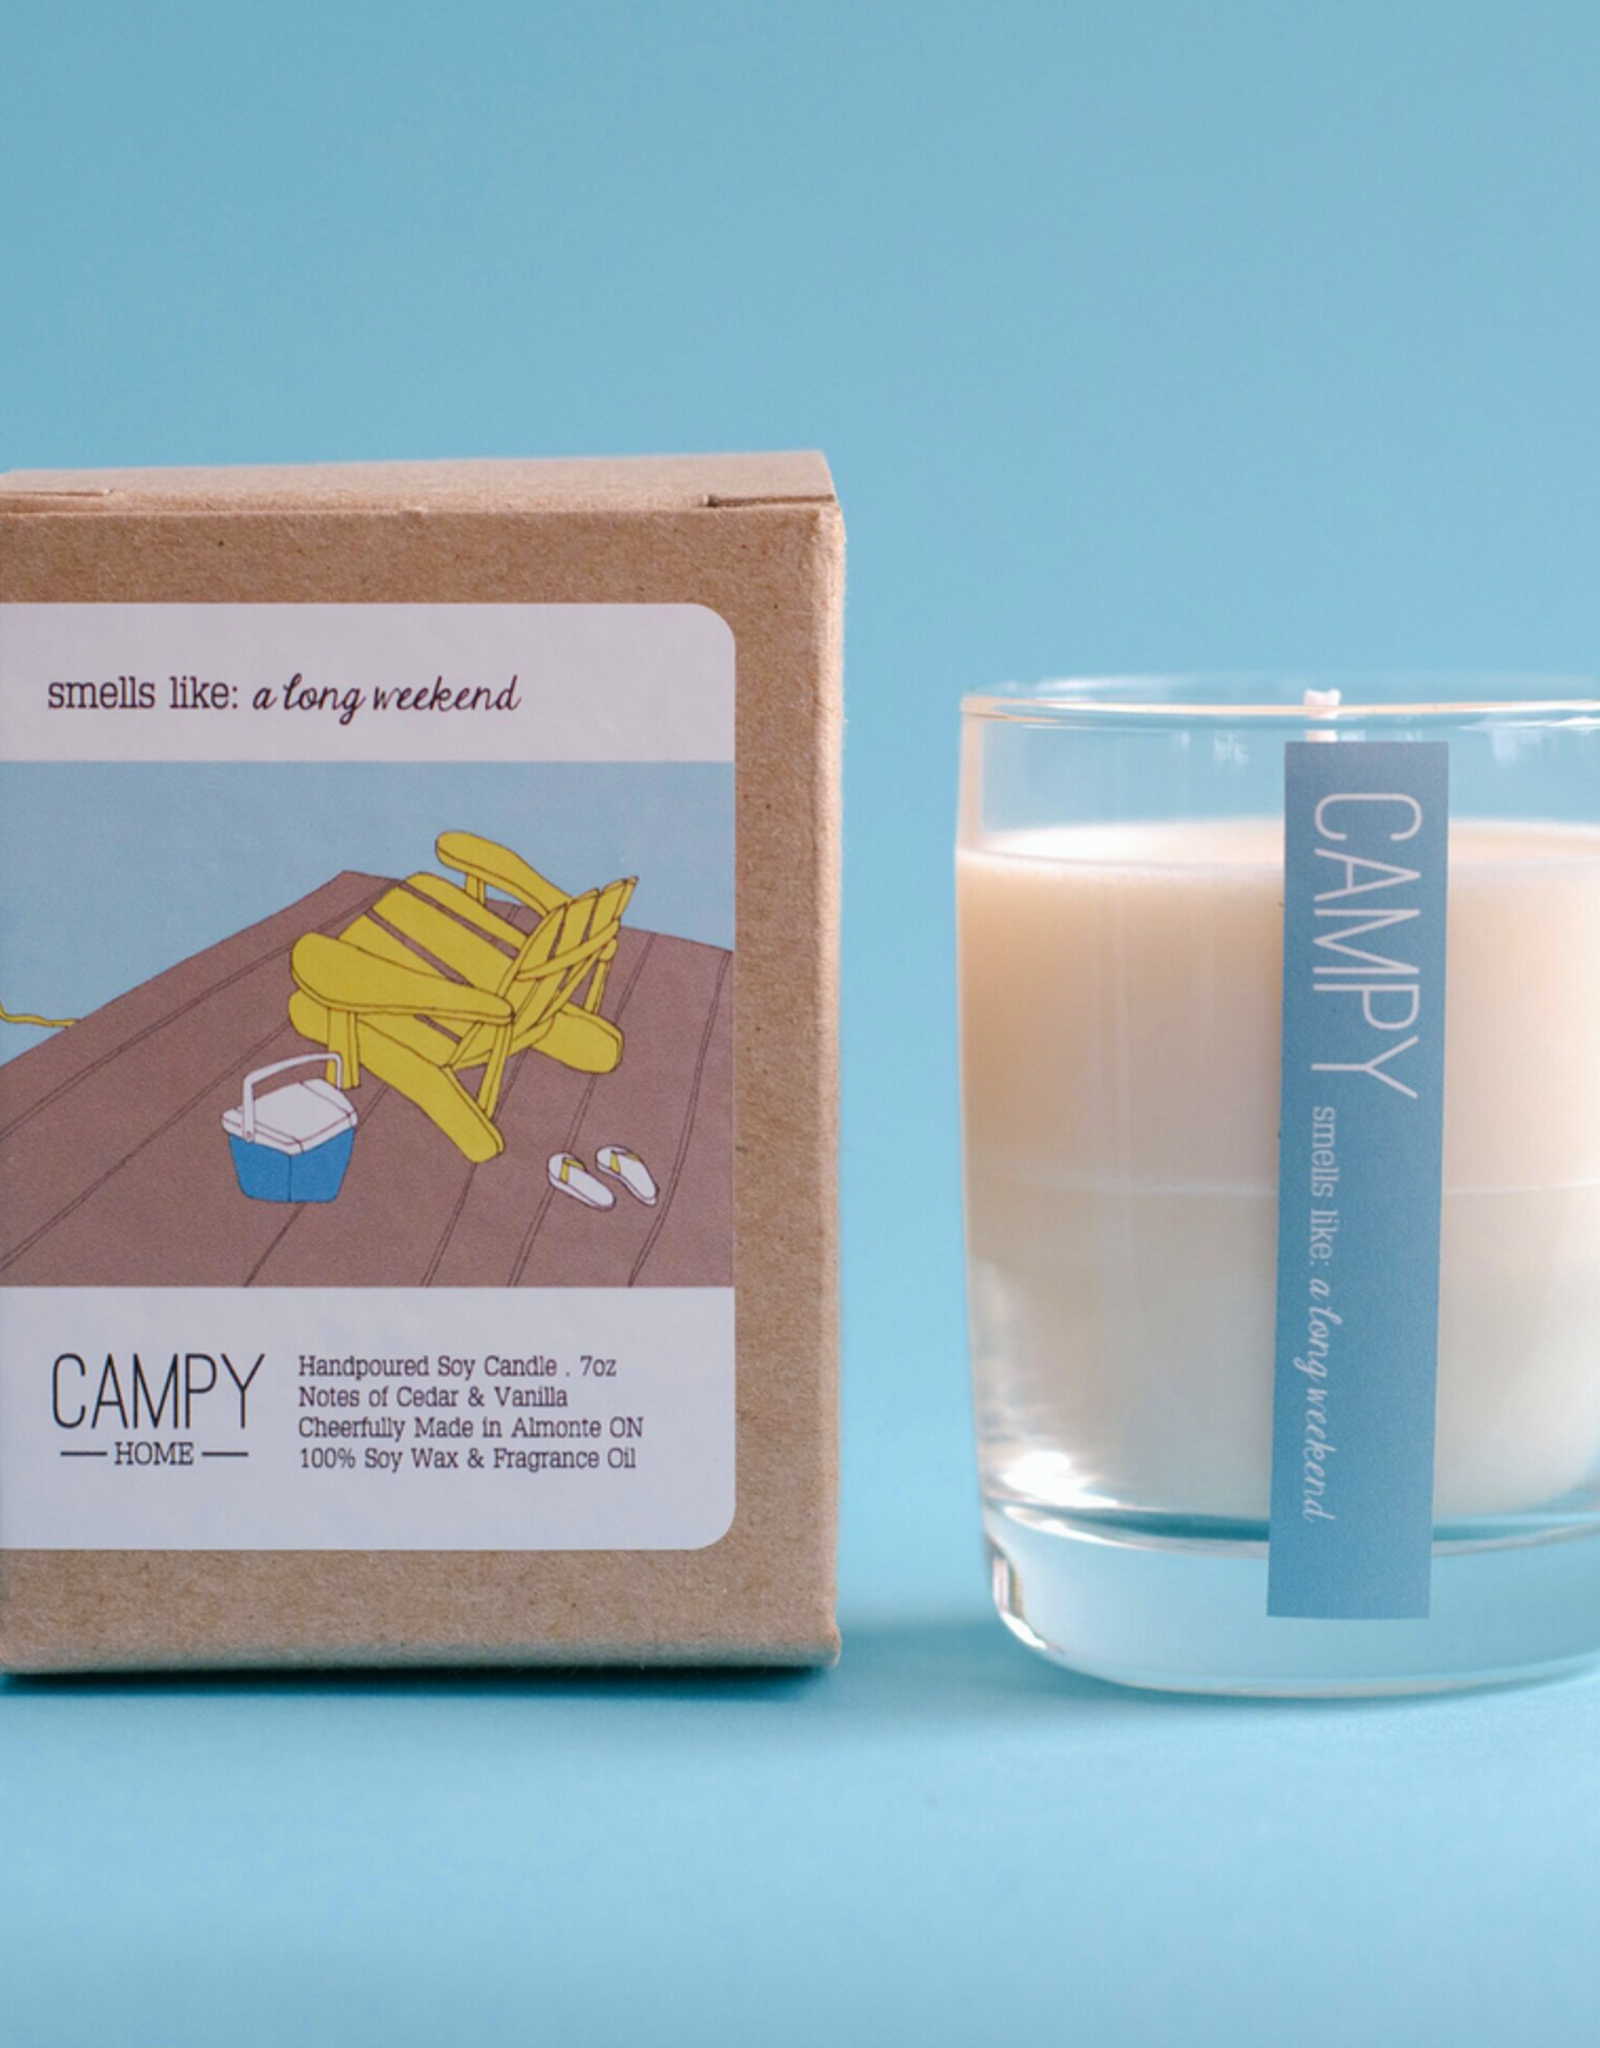 Campy Home Campy Home Long Weekend Candle